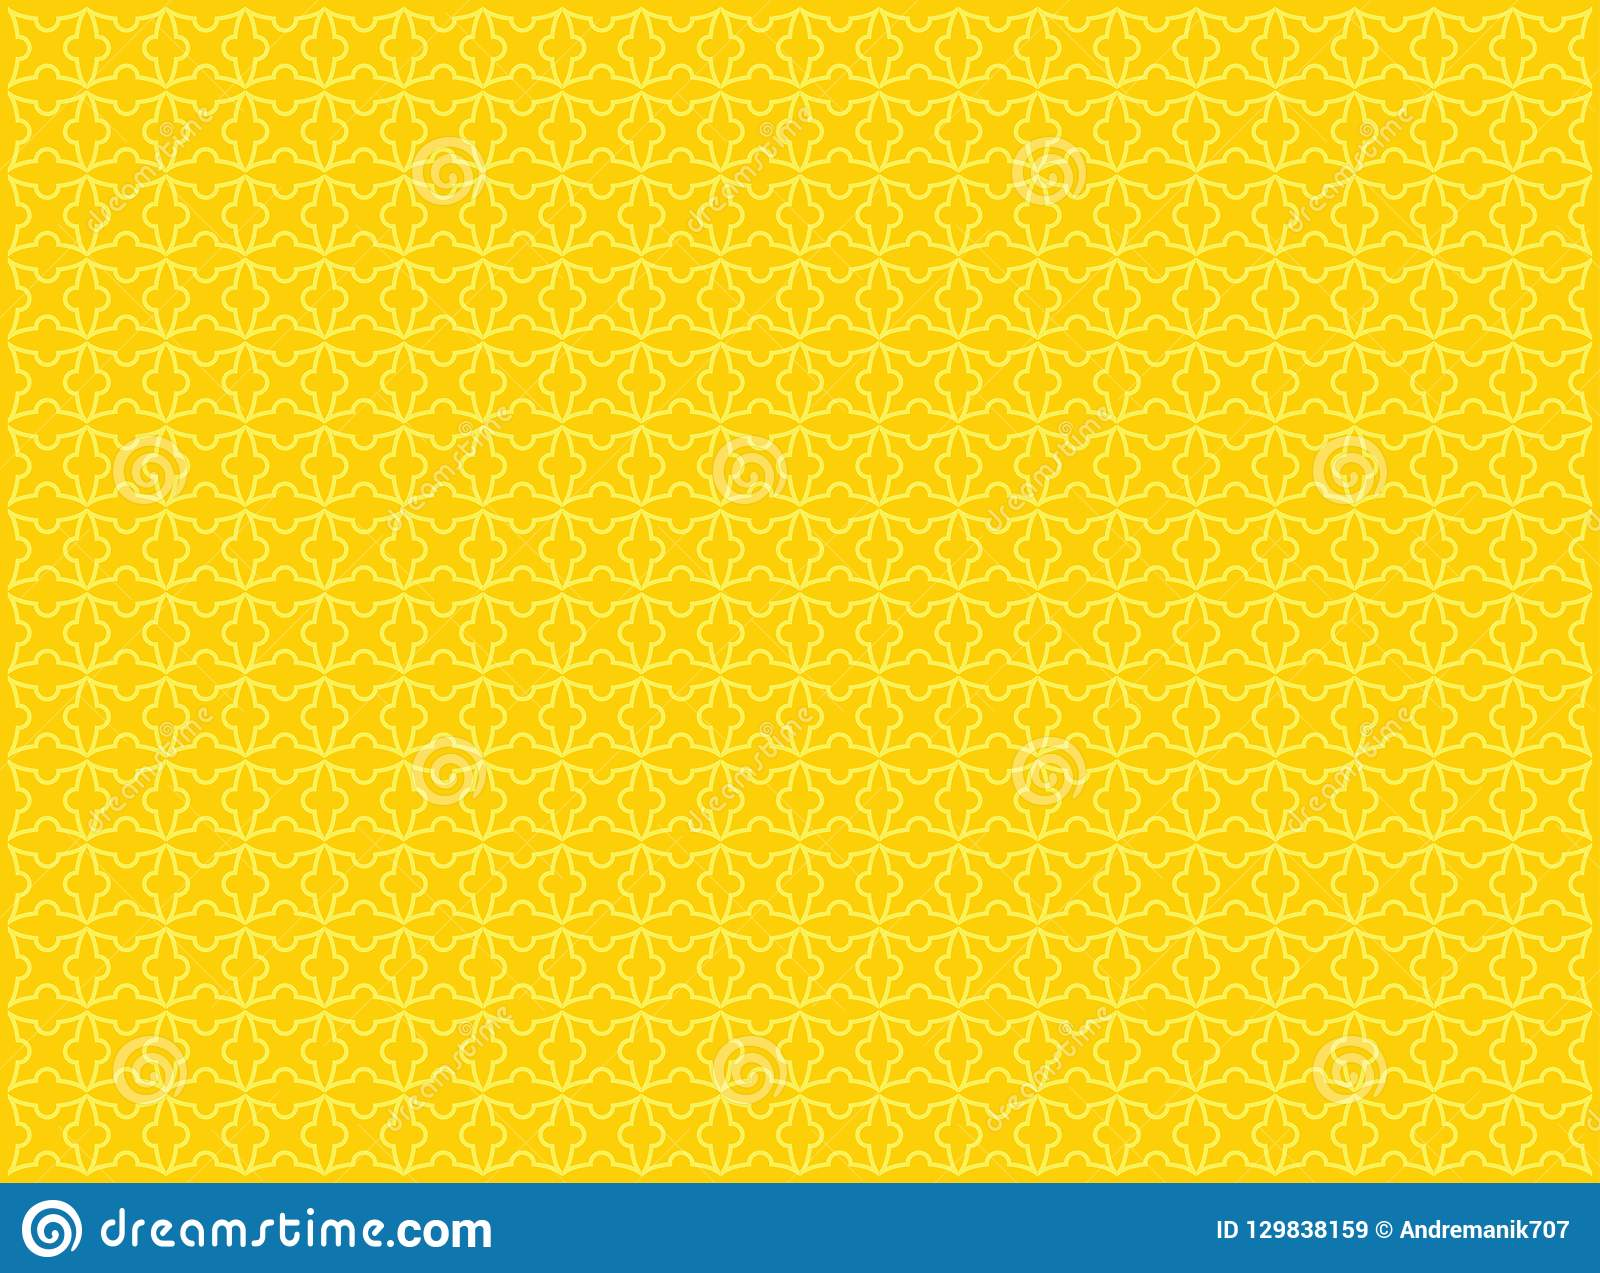 Unduh Kumpulan Background Ppt Yellow HD Gratis